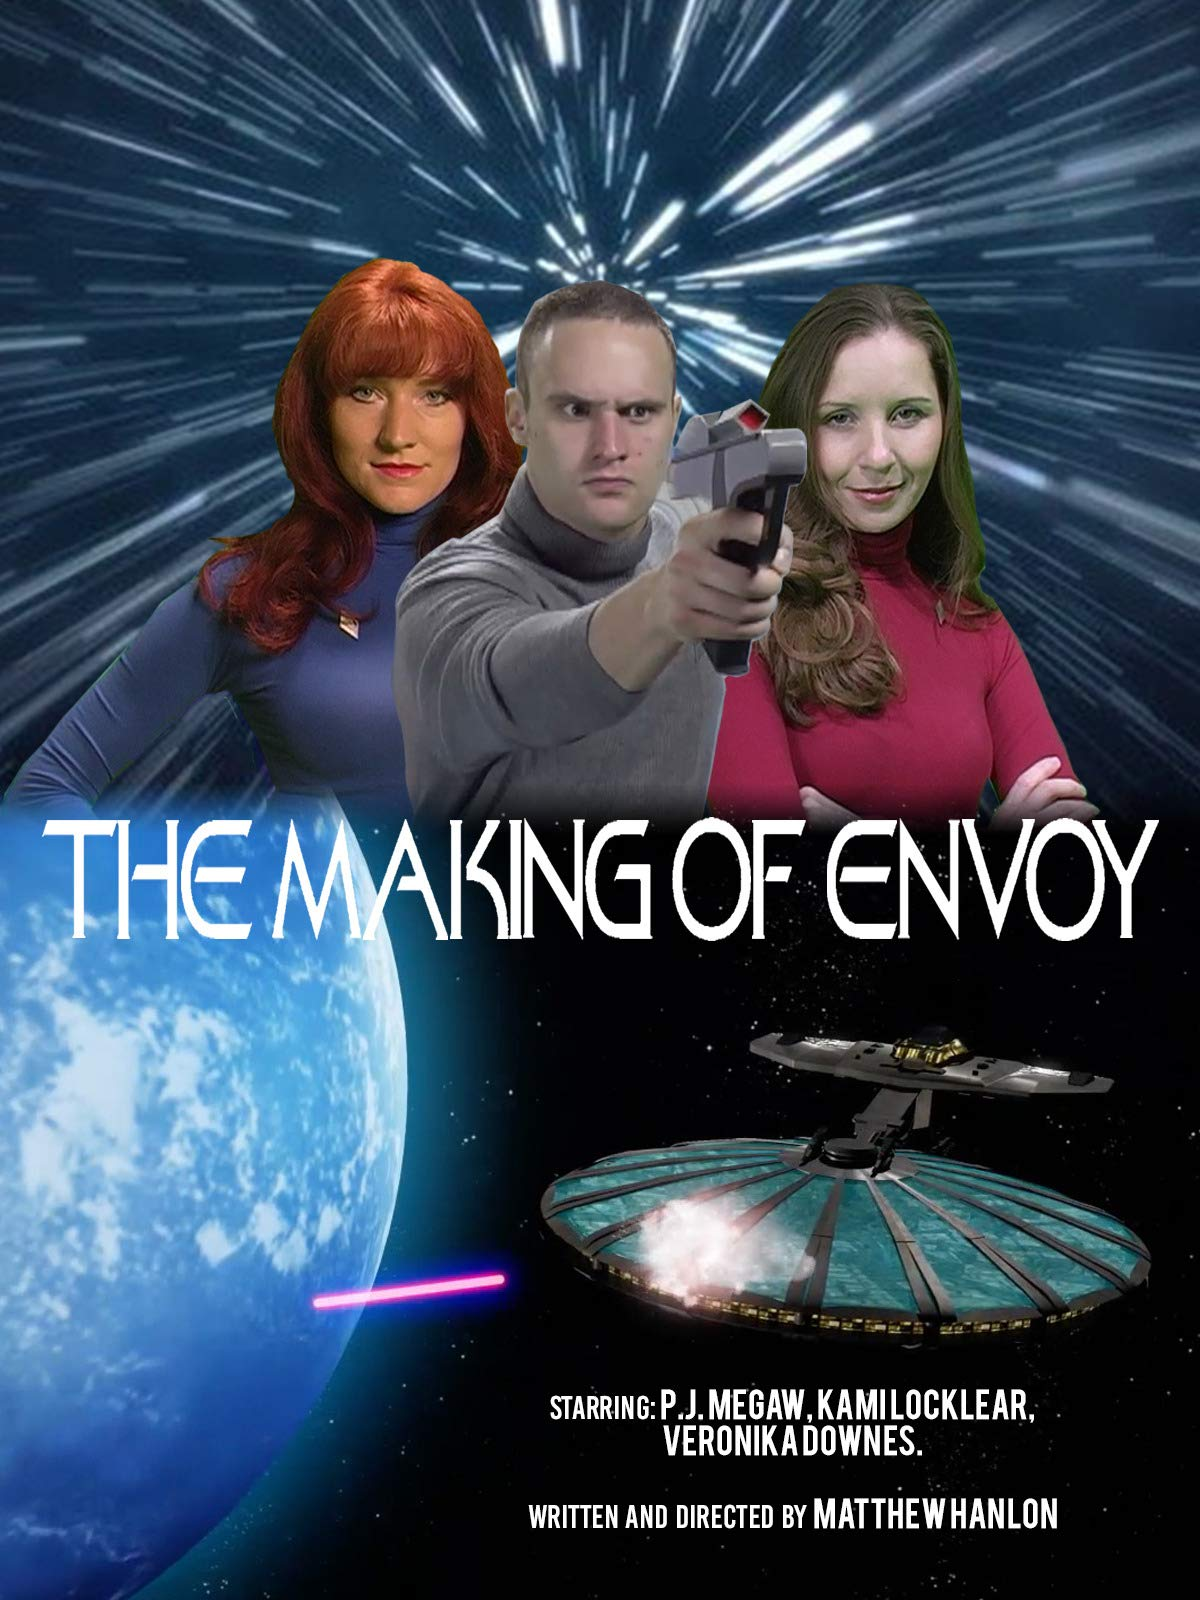 The Making of Envoy